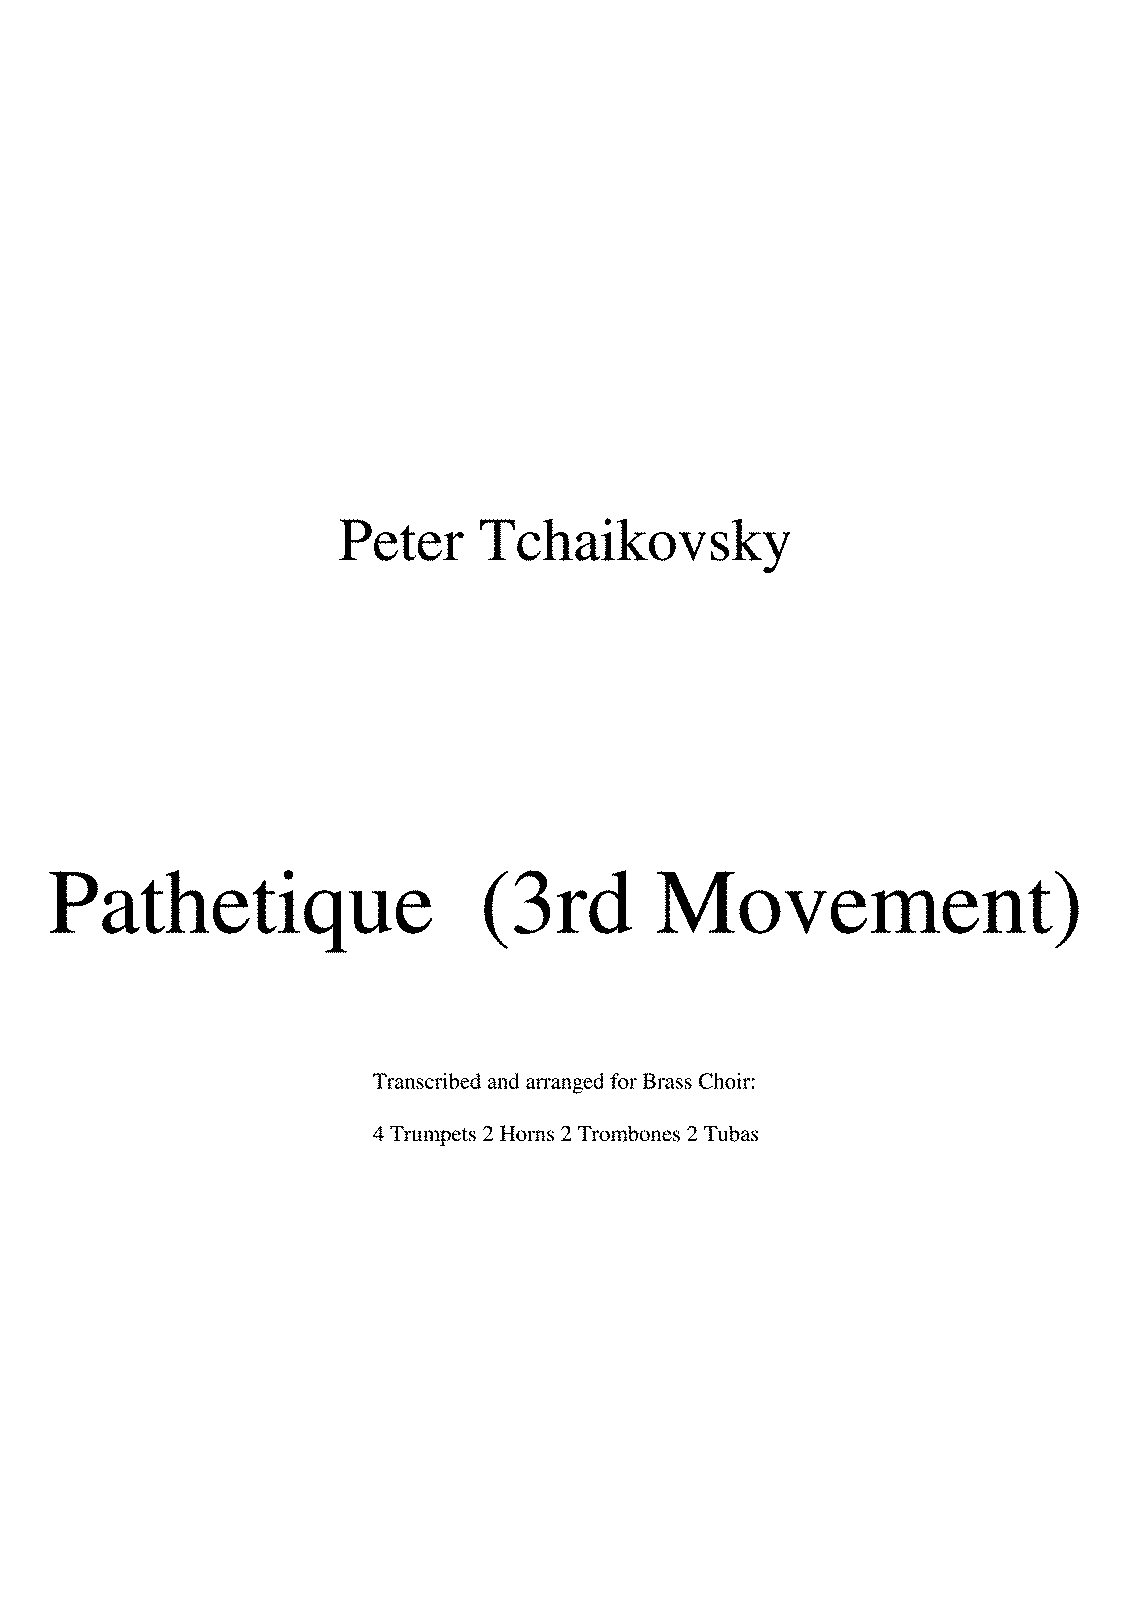 PMLP02511-Pathetique (3rd Movement).pdf